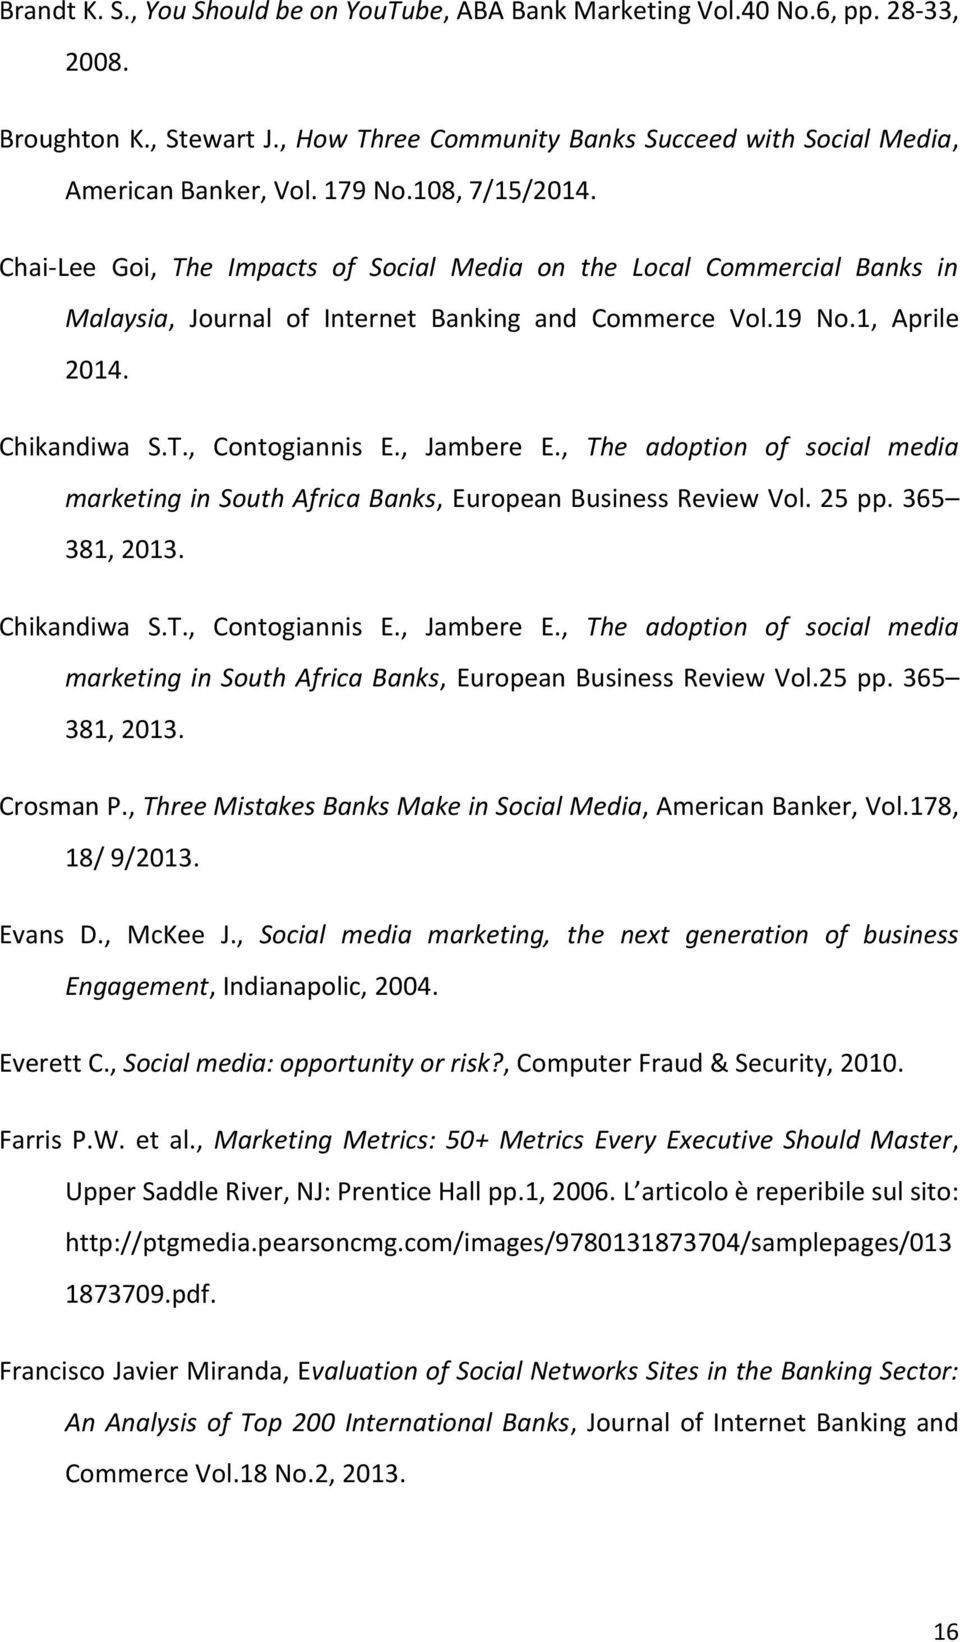 , Jambere E., The adoption of social media marketing in South Africa Banks, European Business Review Vol. 25 pp. 365 381, 2013. Chikandiwa S.T., Contogiannis E., Jambere E., The adoption of social media marketing in South Africa Banks, European Business Review Vol.25 pp. 365 381, 2013. Crosman P.